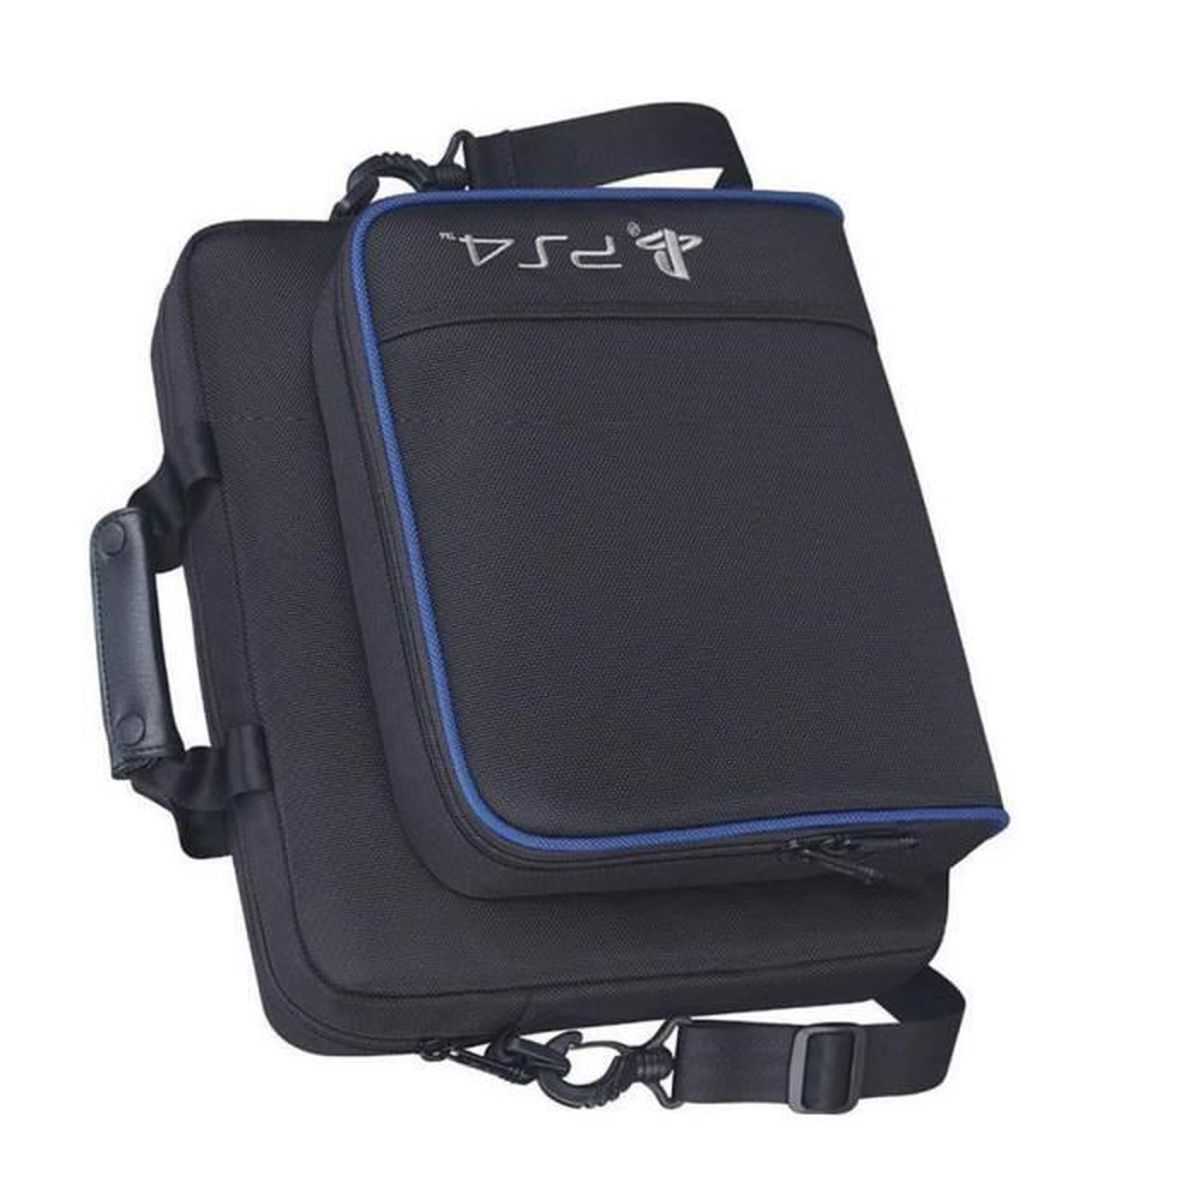 Stoex sac de transport pour play station 4 sac ps4 for Housse transport costume